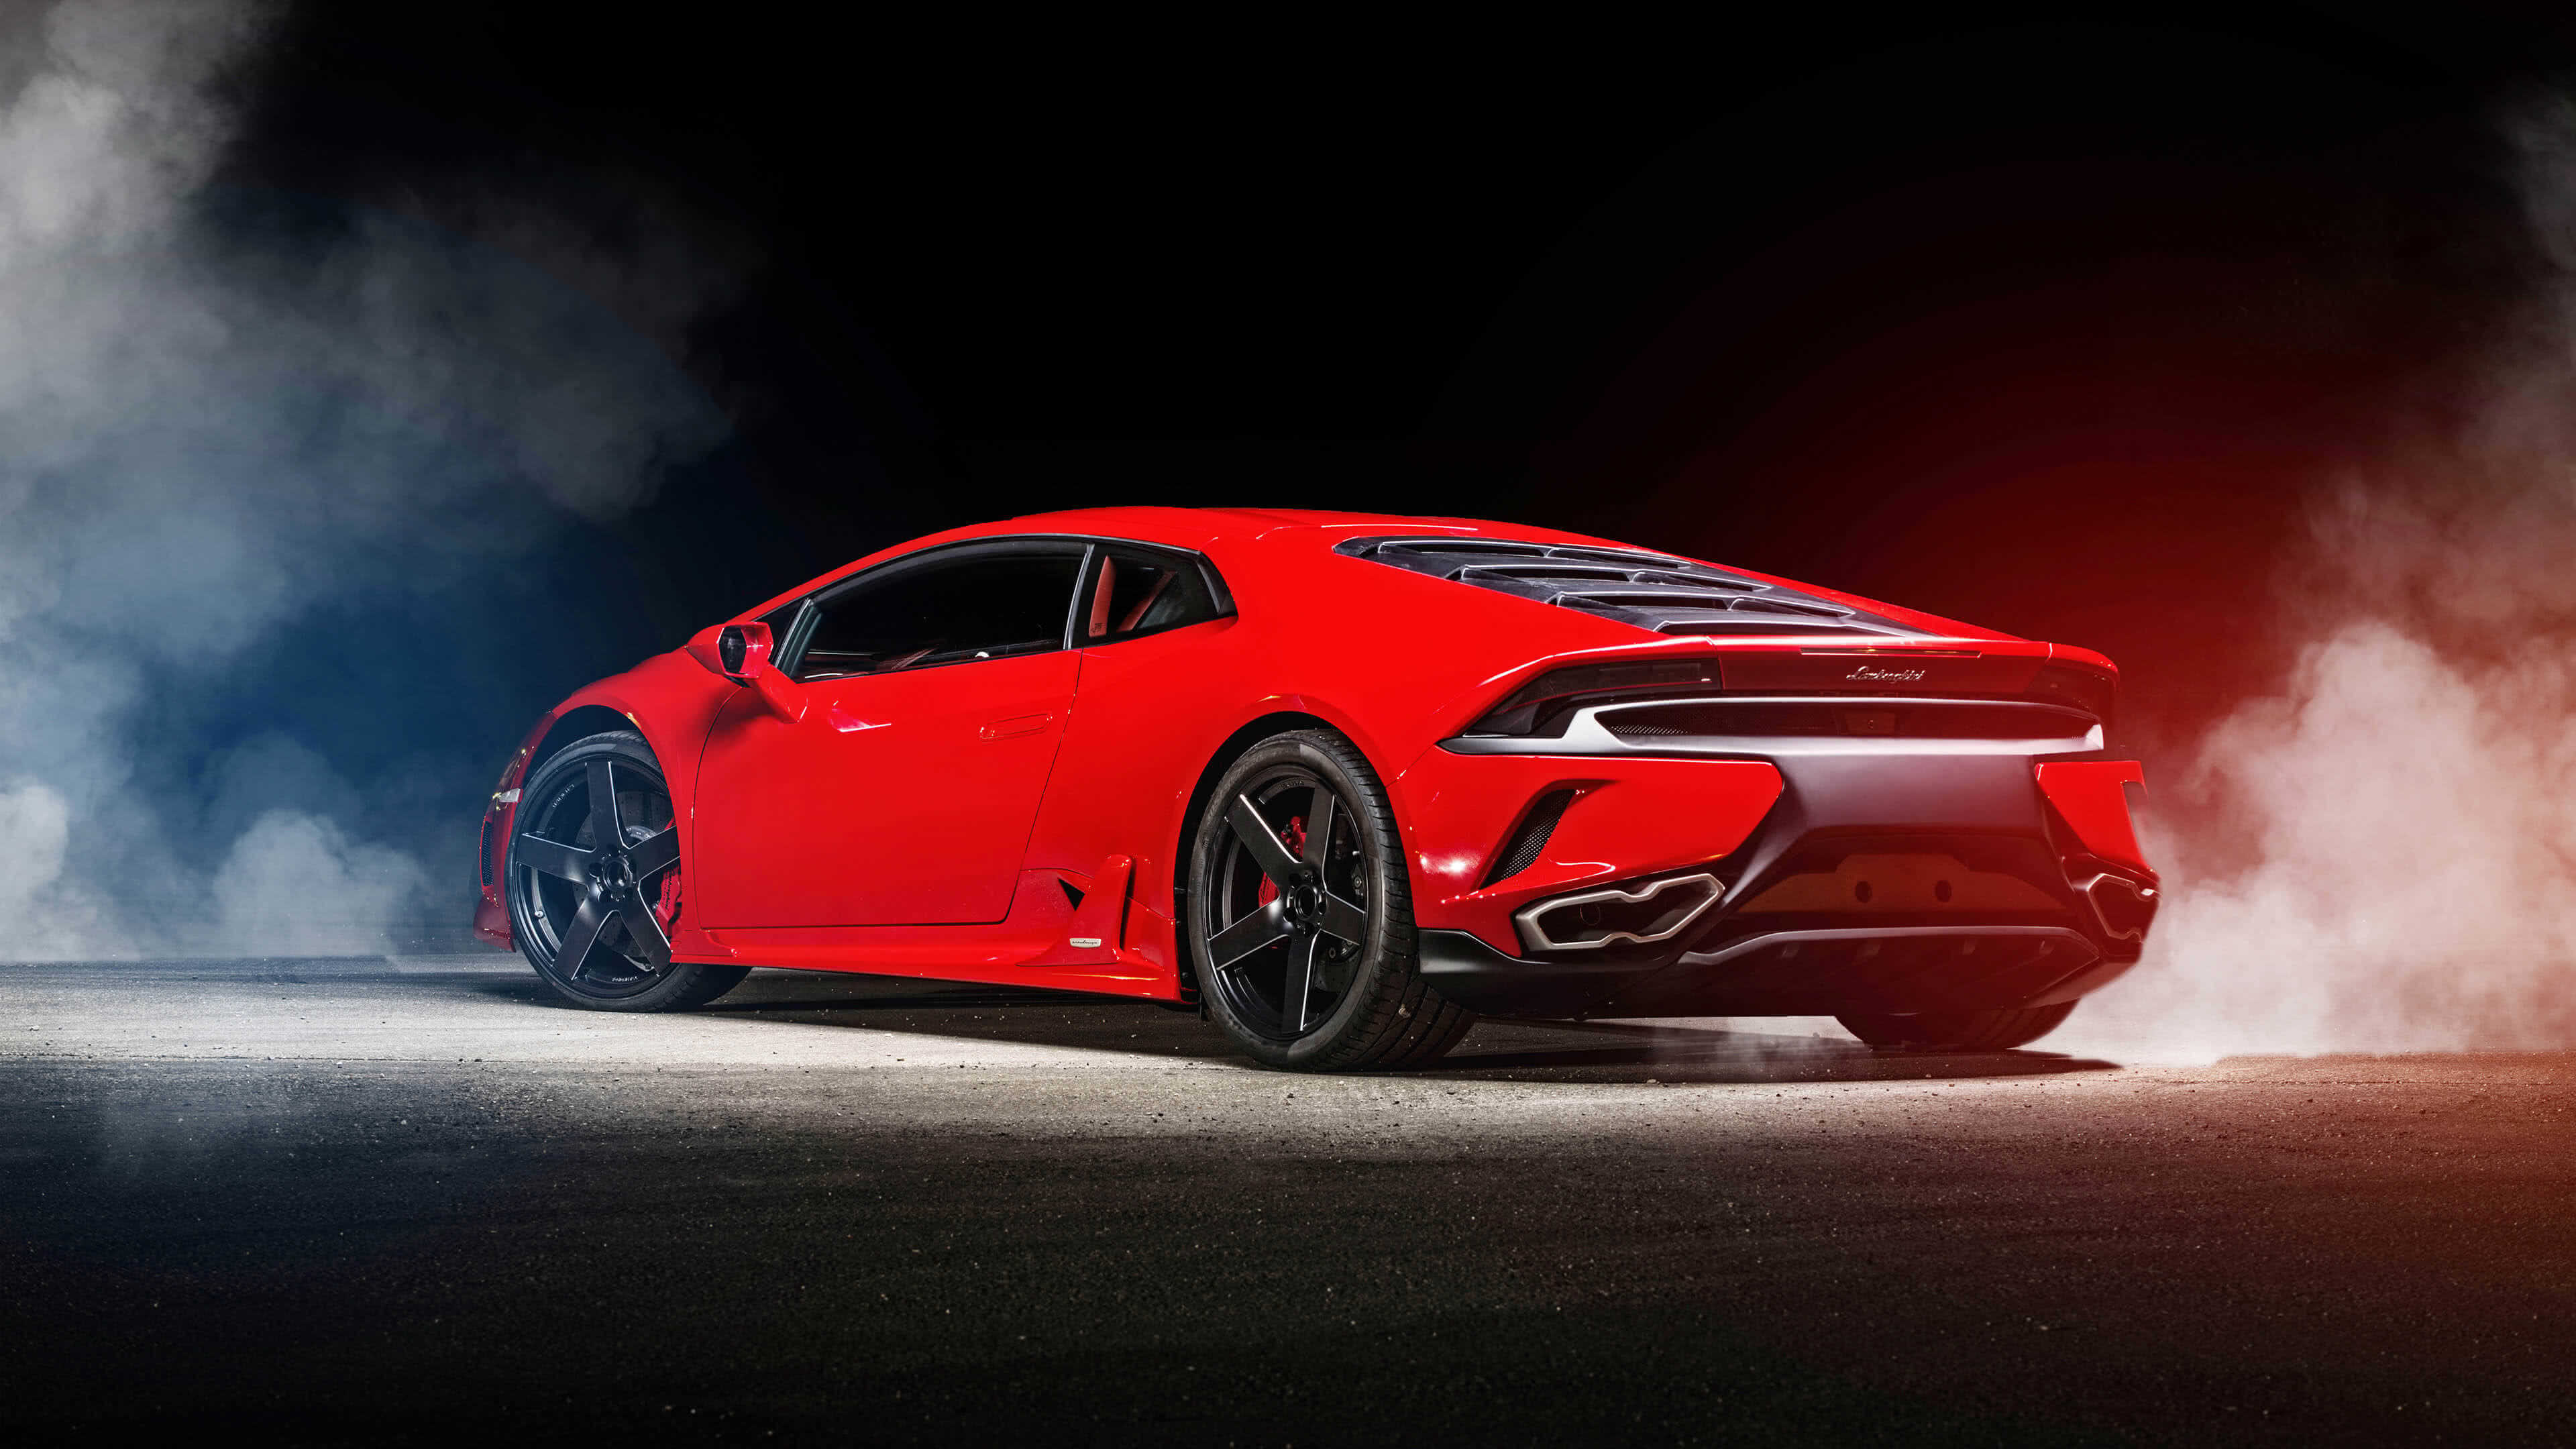 red lamborghini huracan uhd 4k wallpaper